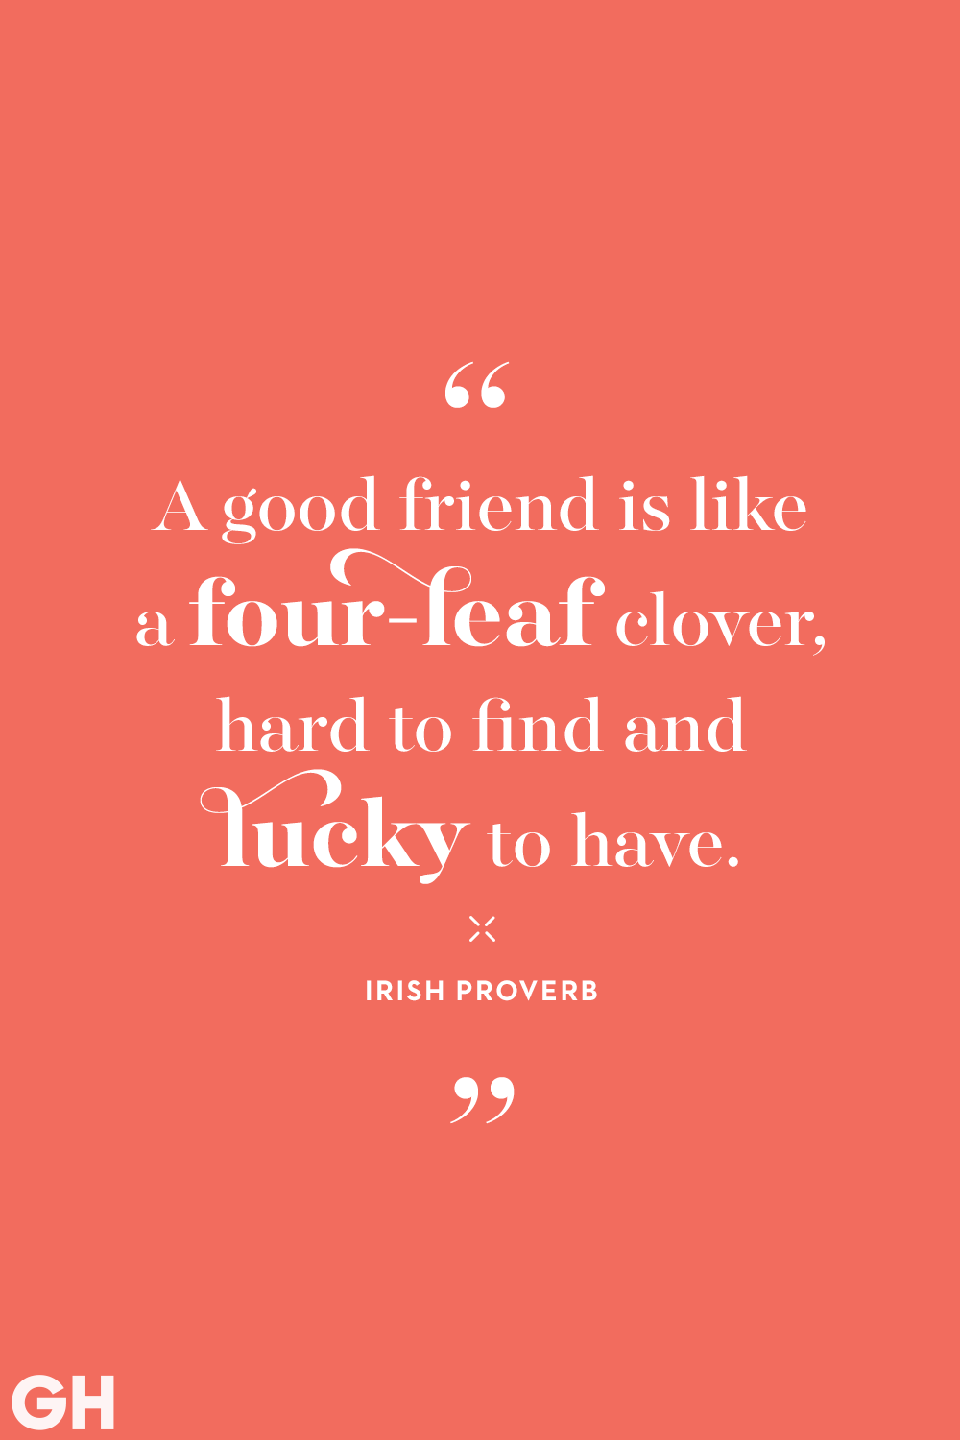 <p>A good friend is like a four-leaf clover, hard to find and lucky to have. </p>